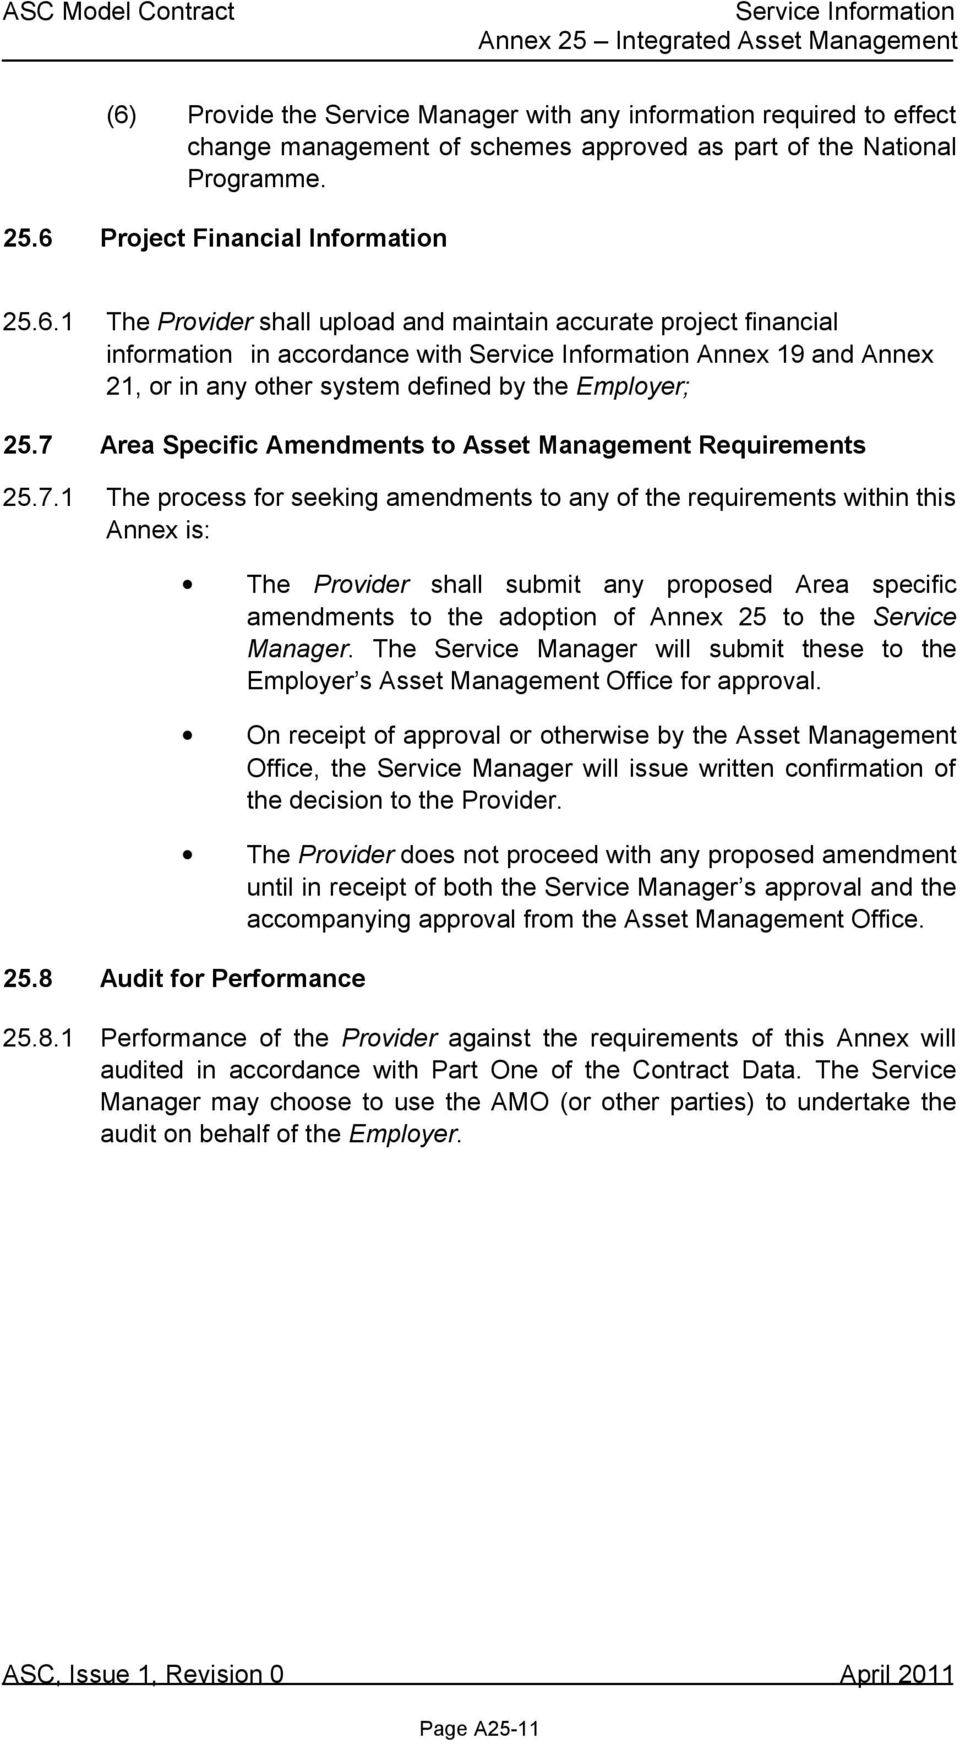 specific amendments to the adoption of Annex 25 to the Service Manager. The Service Manager will submit these to the Employer s Asset Management Office for approval.